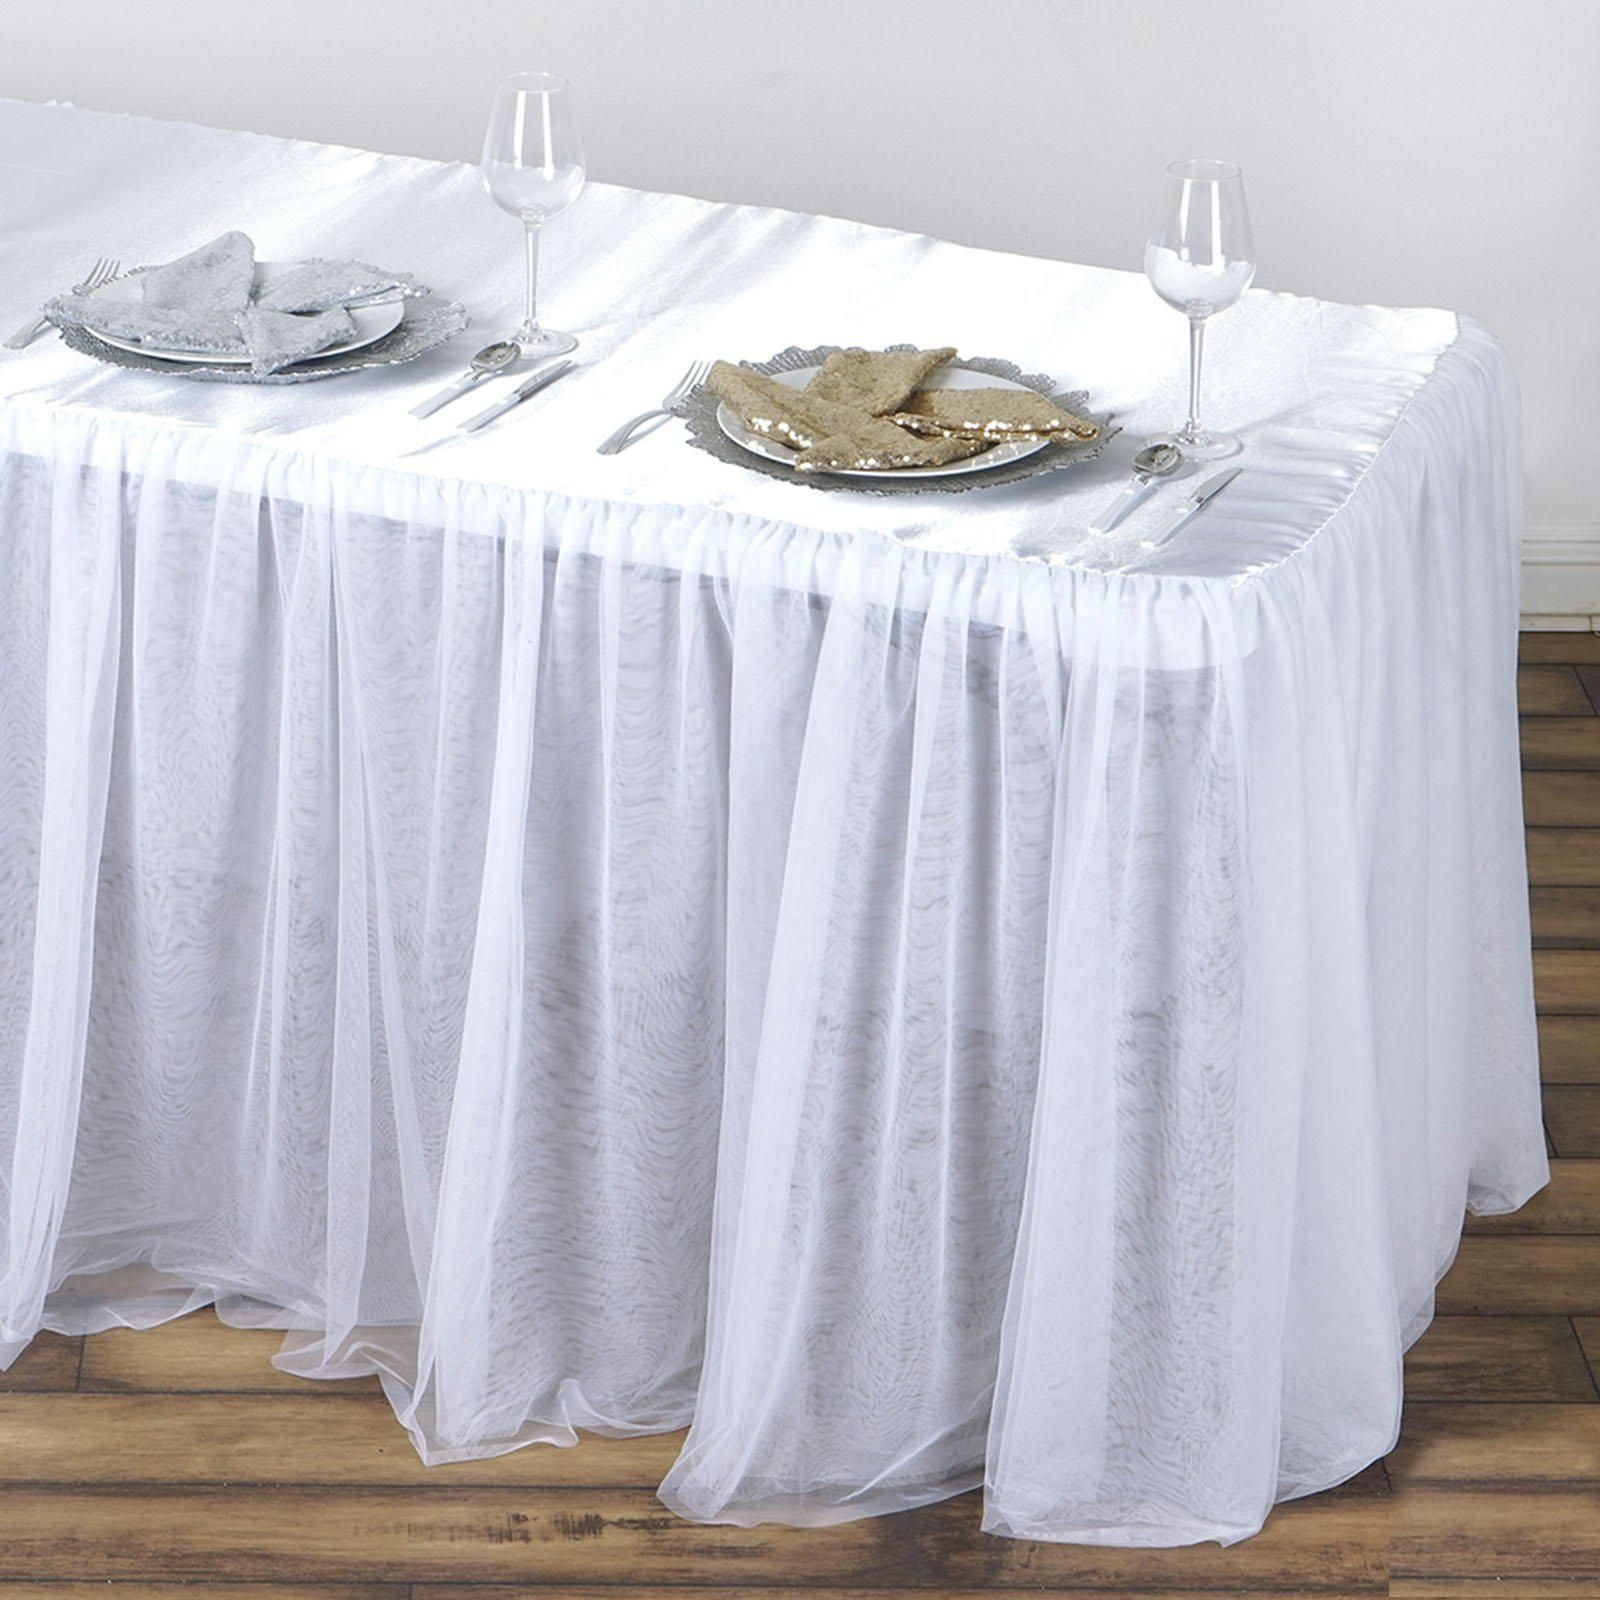 8ft White 3 Layer Tulle Tutu Satin Pleated Table Skirt Tulle Table Tulle Tablecloth Table Decorations